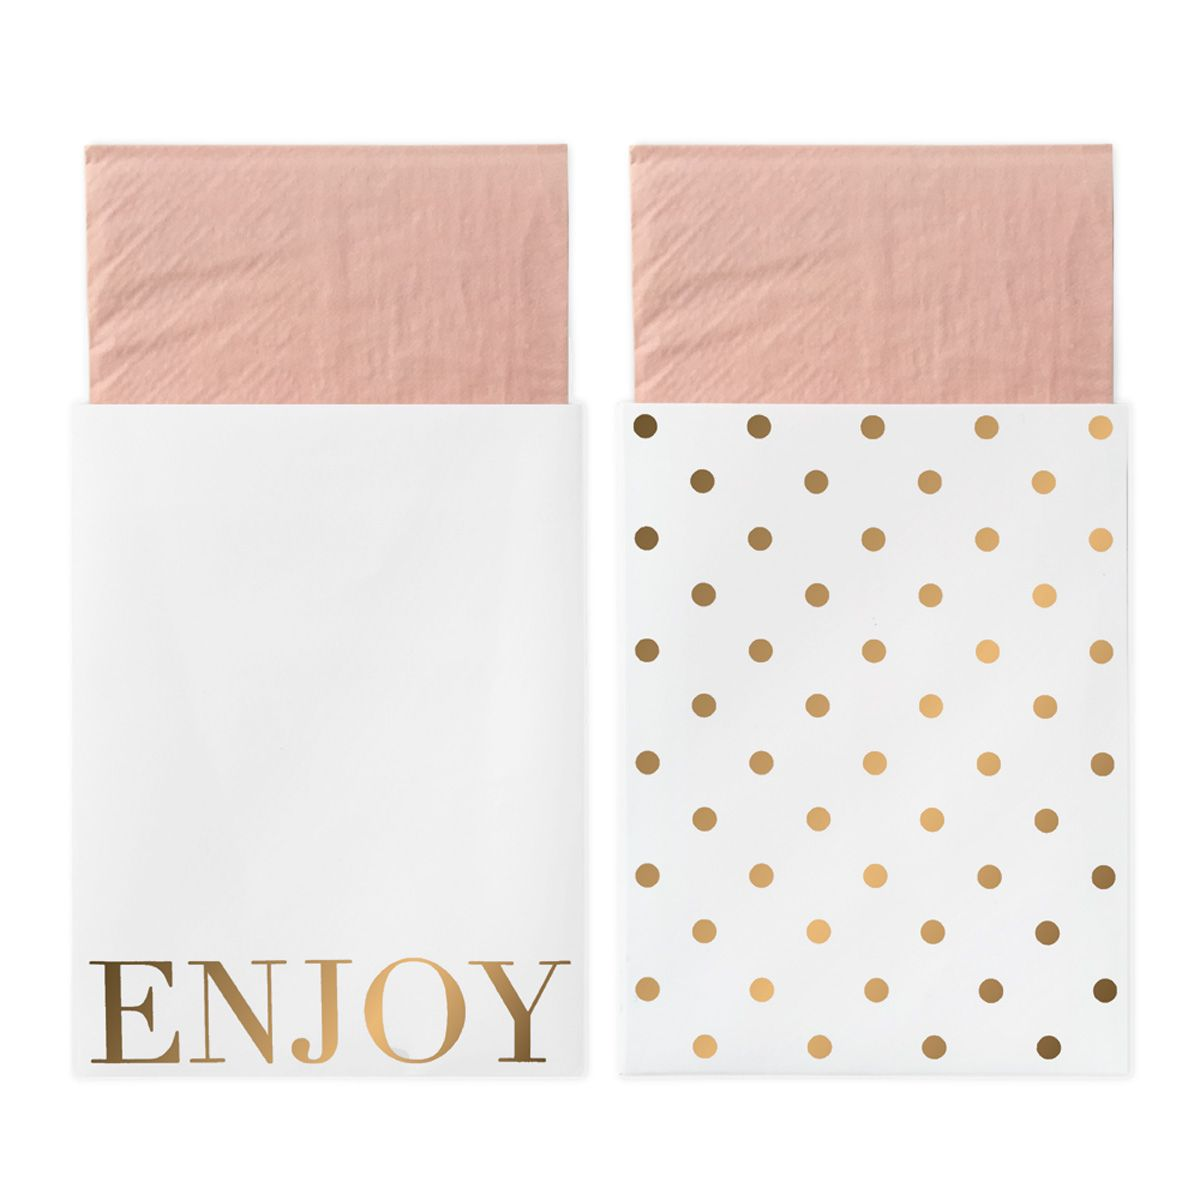 Servietten mit Papiertasche 'Enjoy' gold/rosa